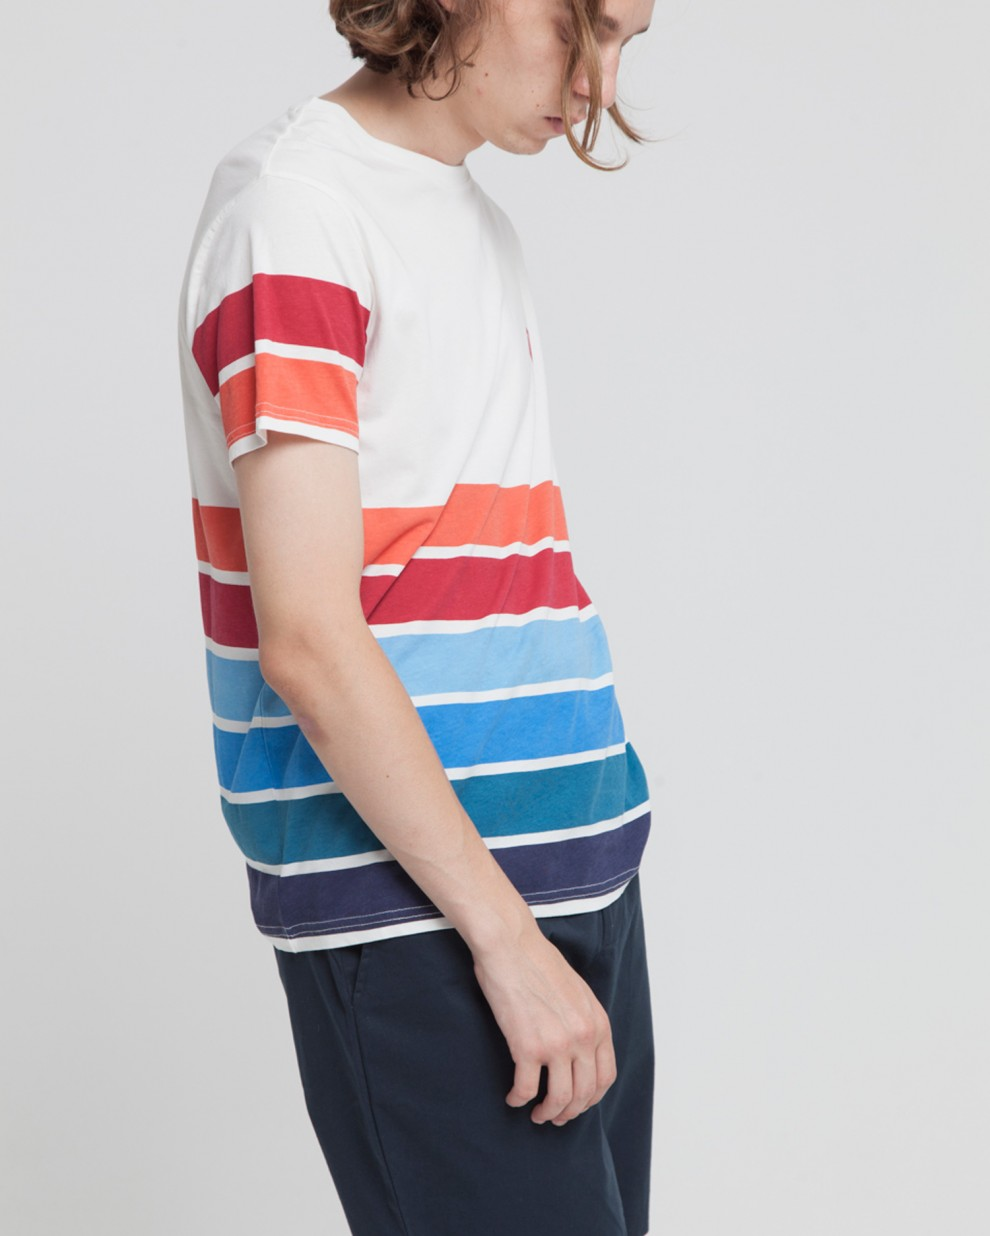 6 lines 6 colors Tee